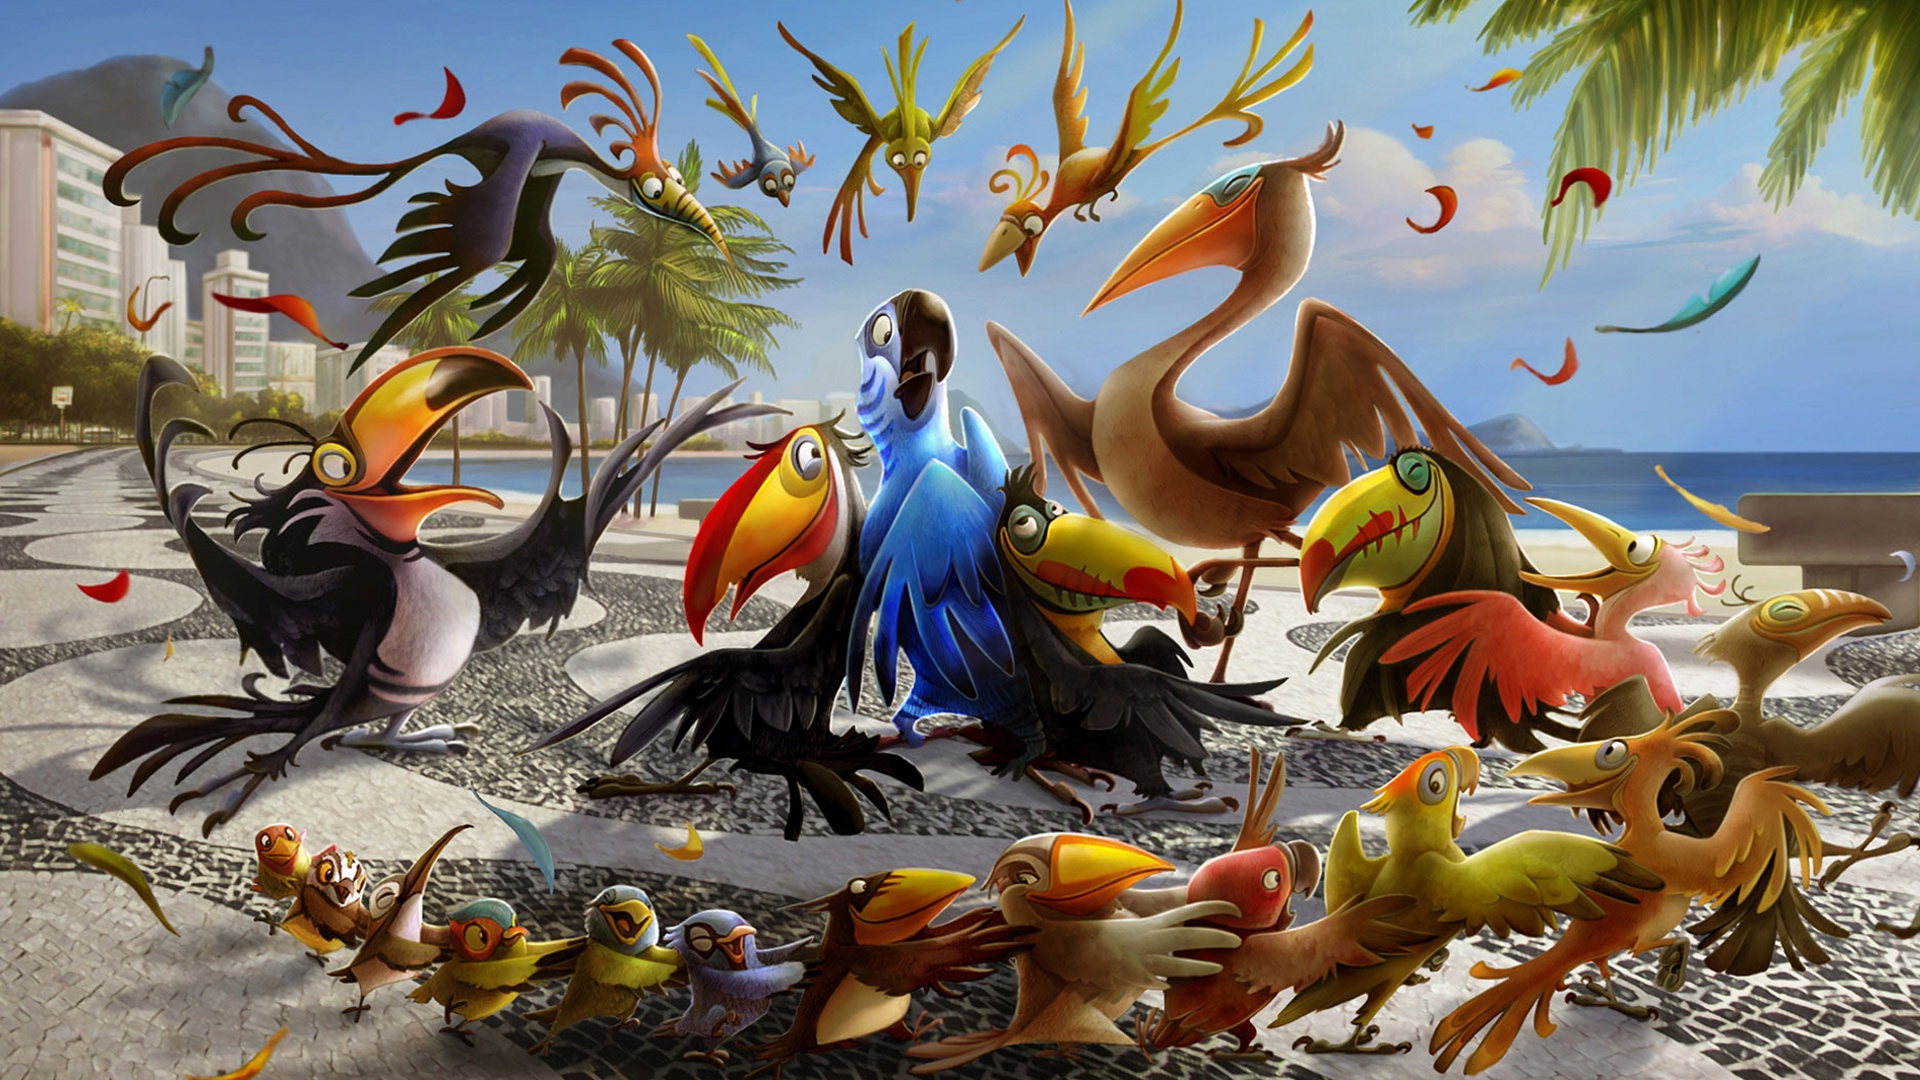 Rio 2 full hd wallpaper and background image 1920x1080 id812735 movie rio 2 wallpaper download voltagebd Choice Image